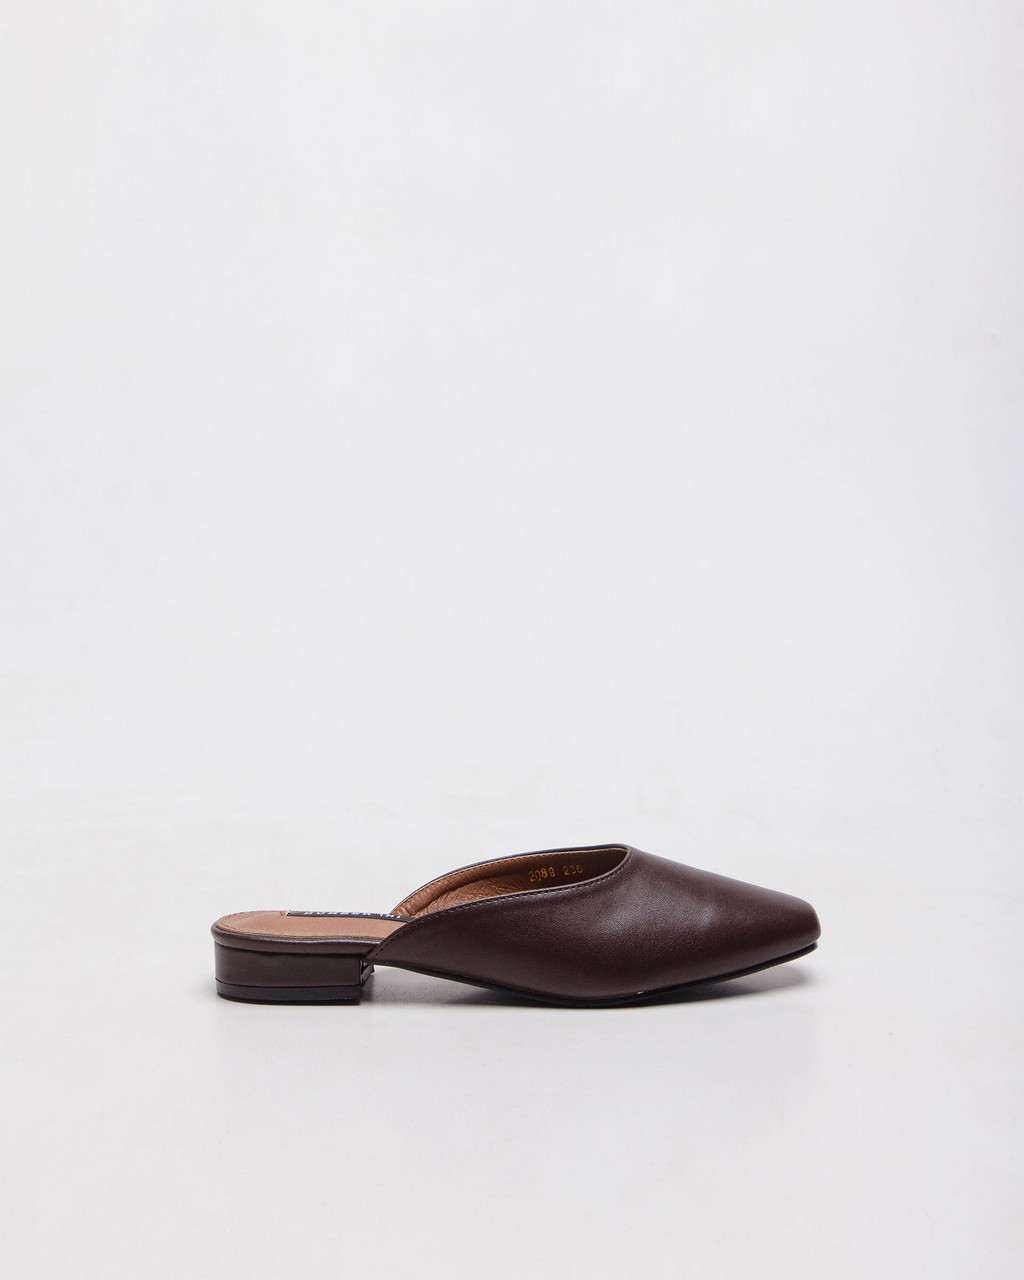 Tagtraume Marigold-05 - Brown(브라운)